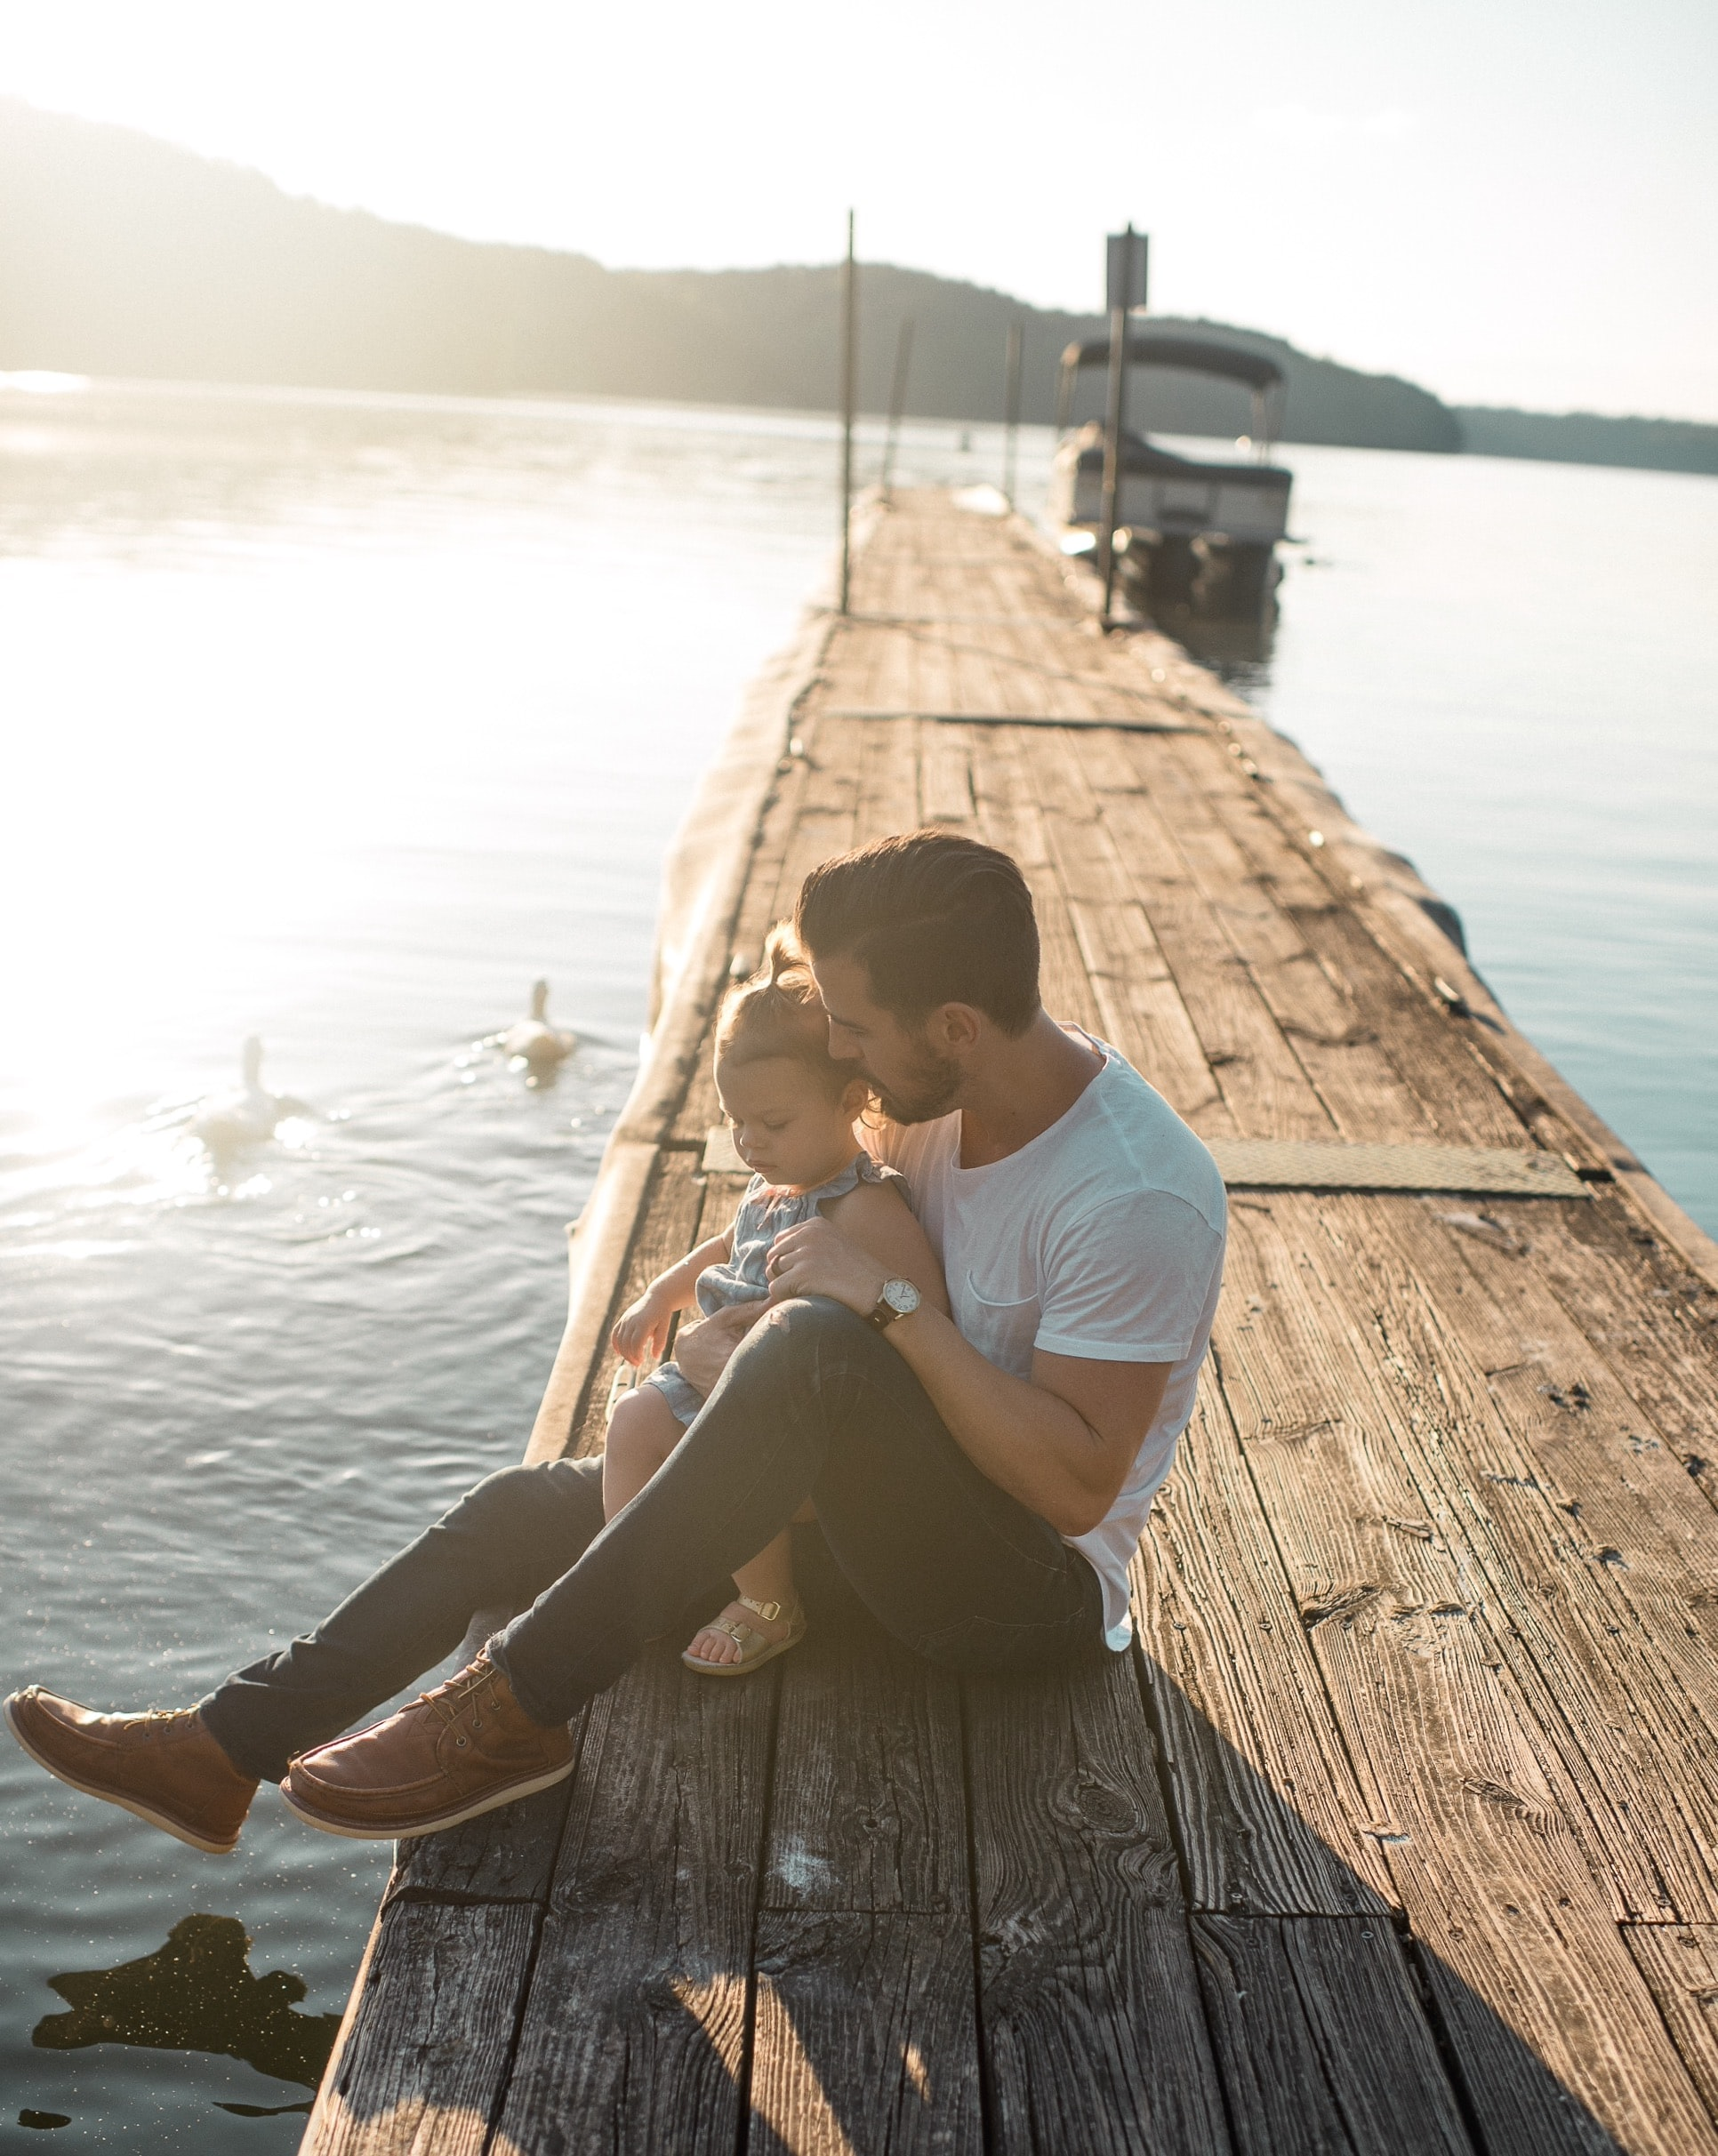 Father holding child on a wooden pier in bright sunlight as ducks swim by